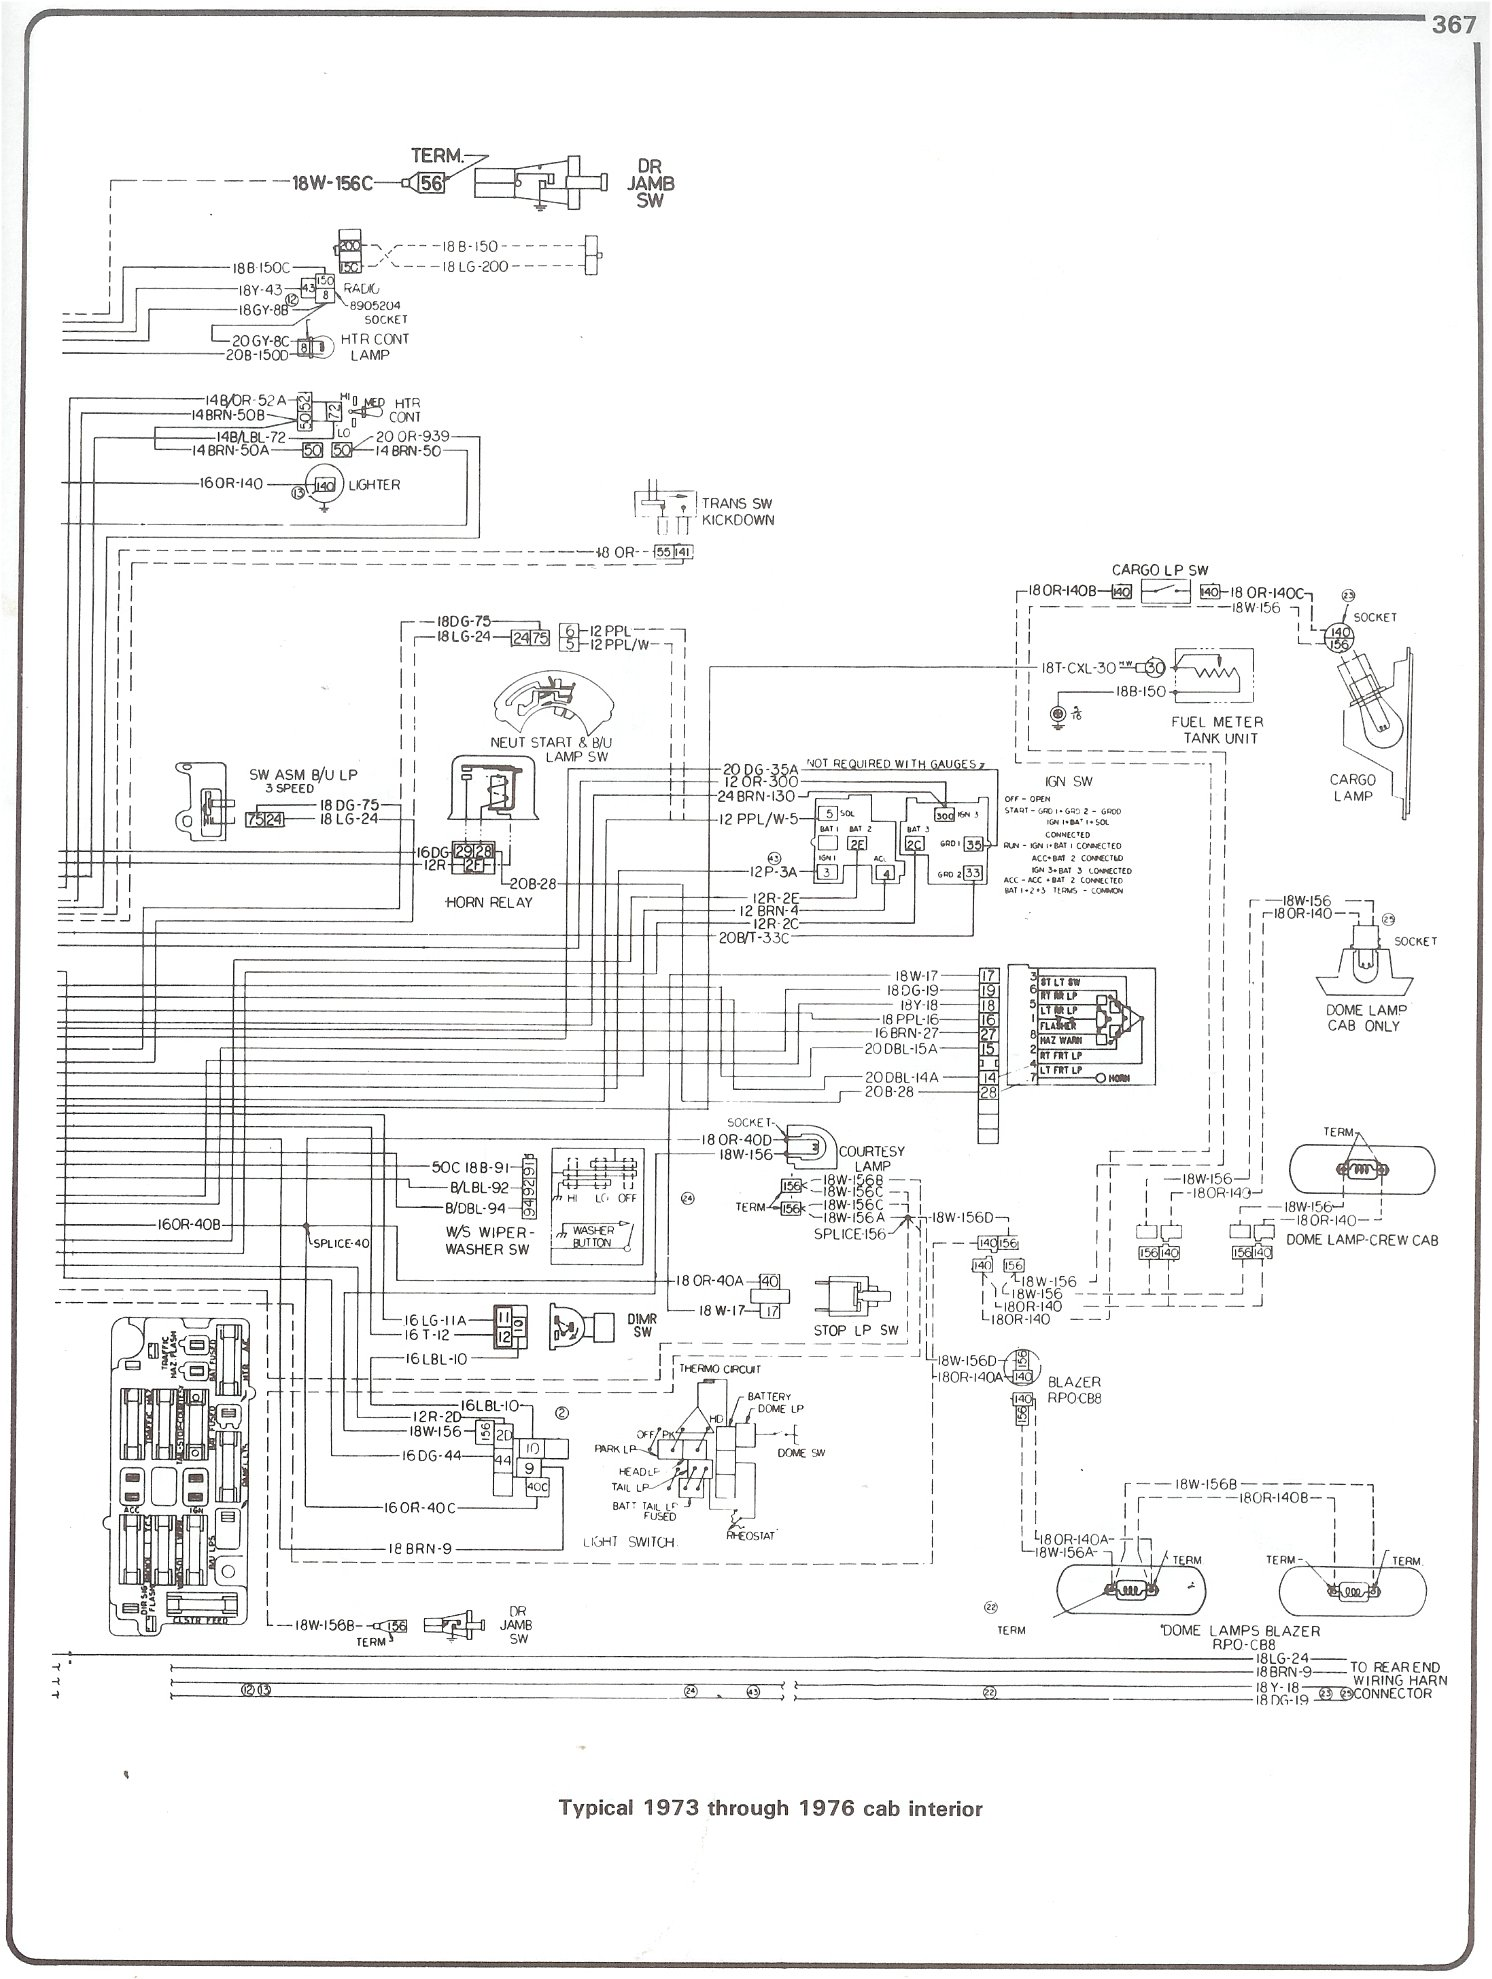 73 76_cab_inter complete 73 87 wiring diagrams instrument cluster wiring diagram at eliteediting.co